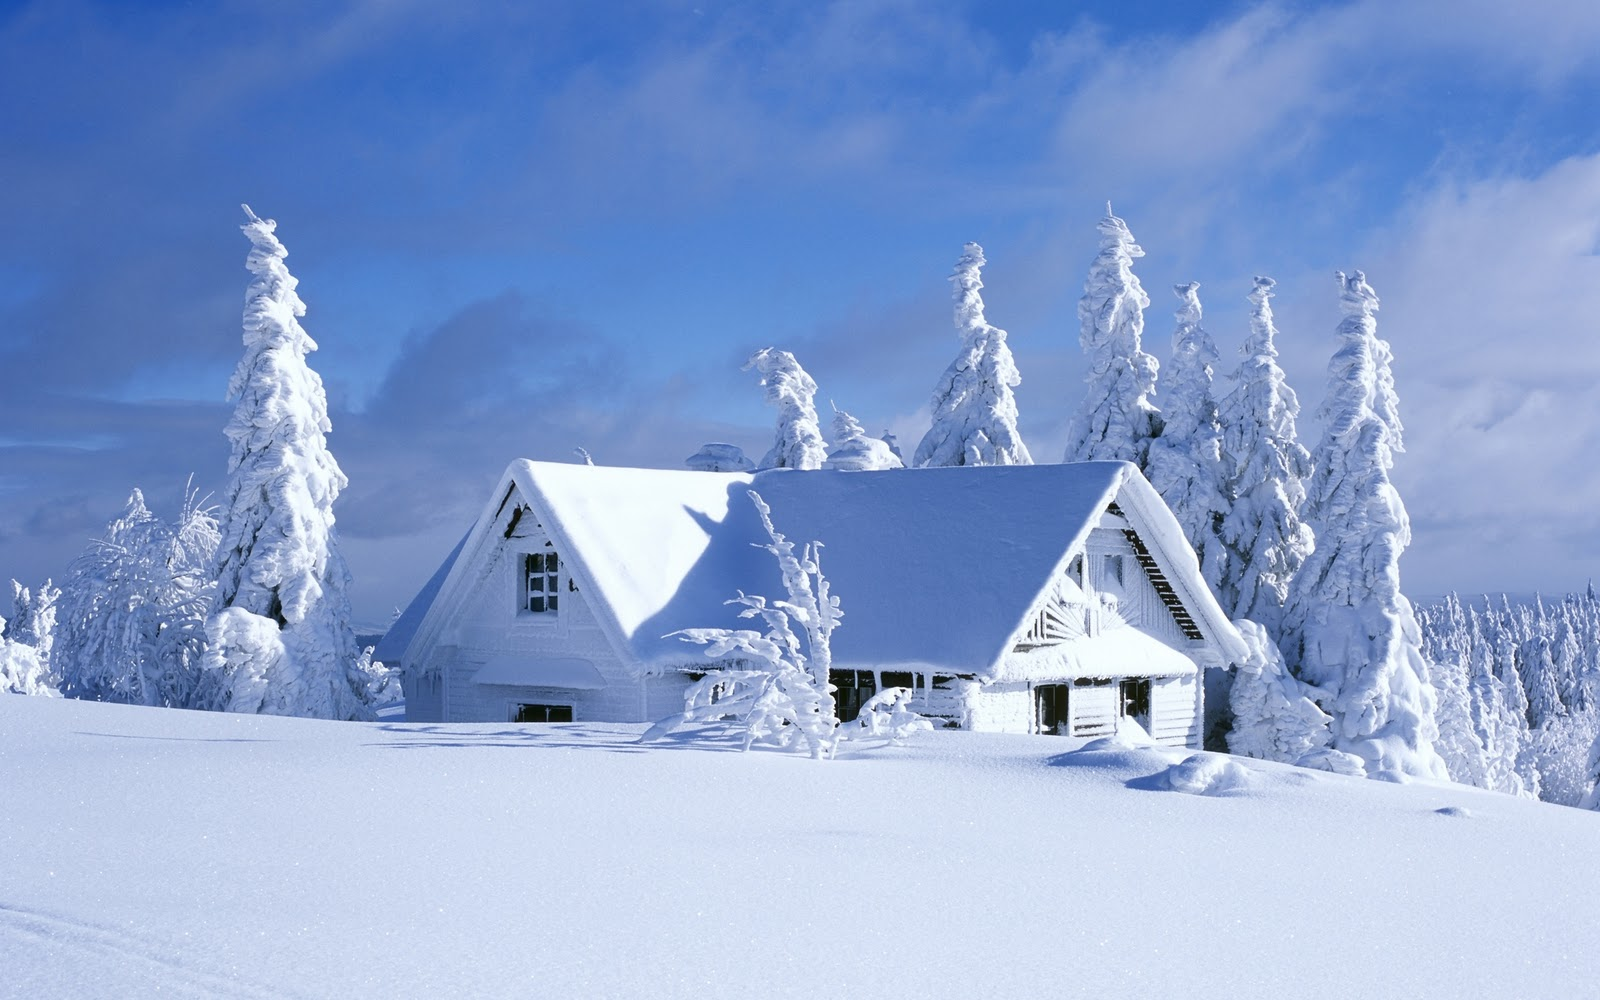 Winter Scene Poster Wallpaper Art Zeromin0 1600x1000